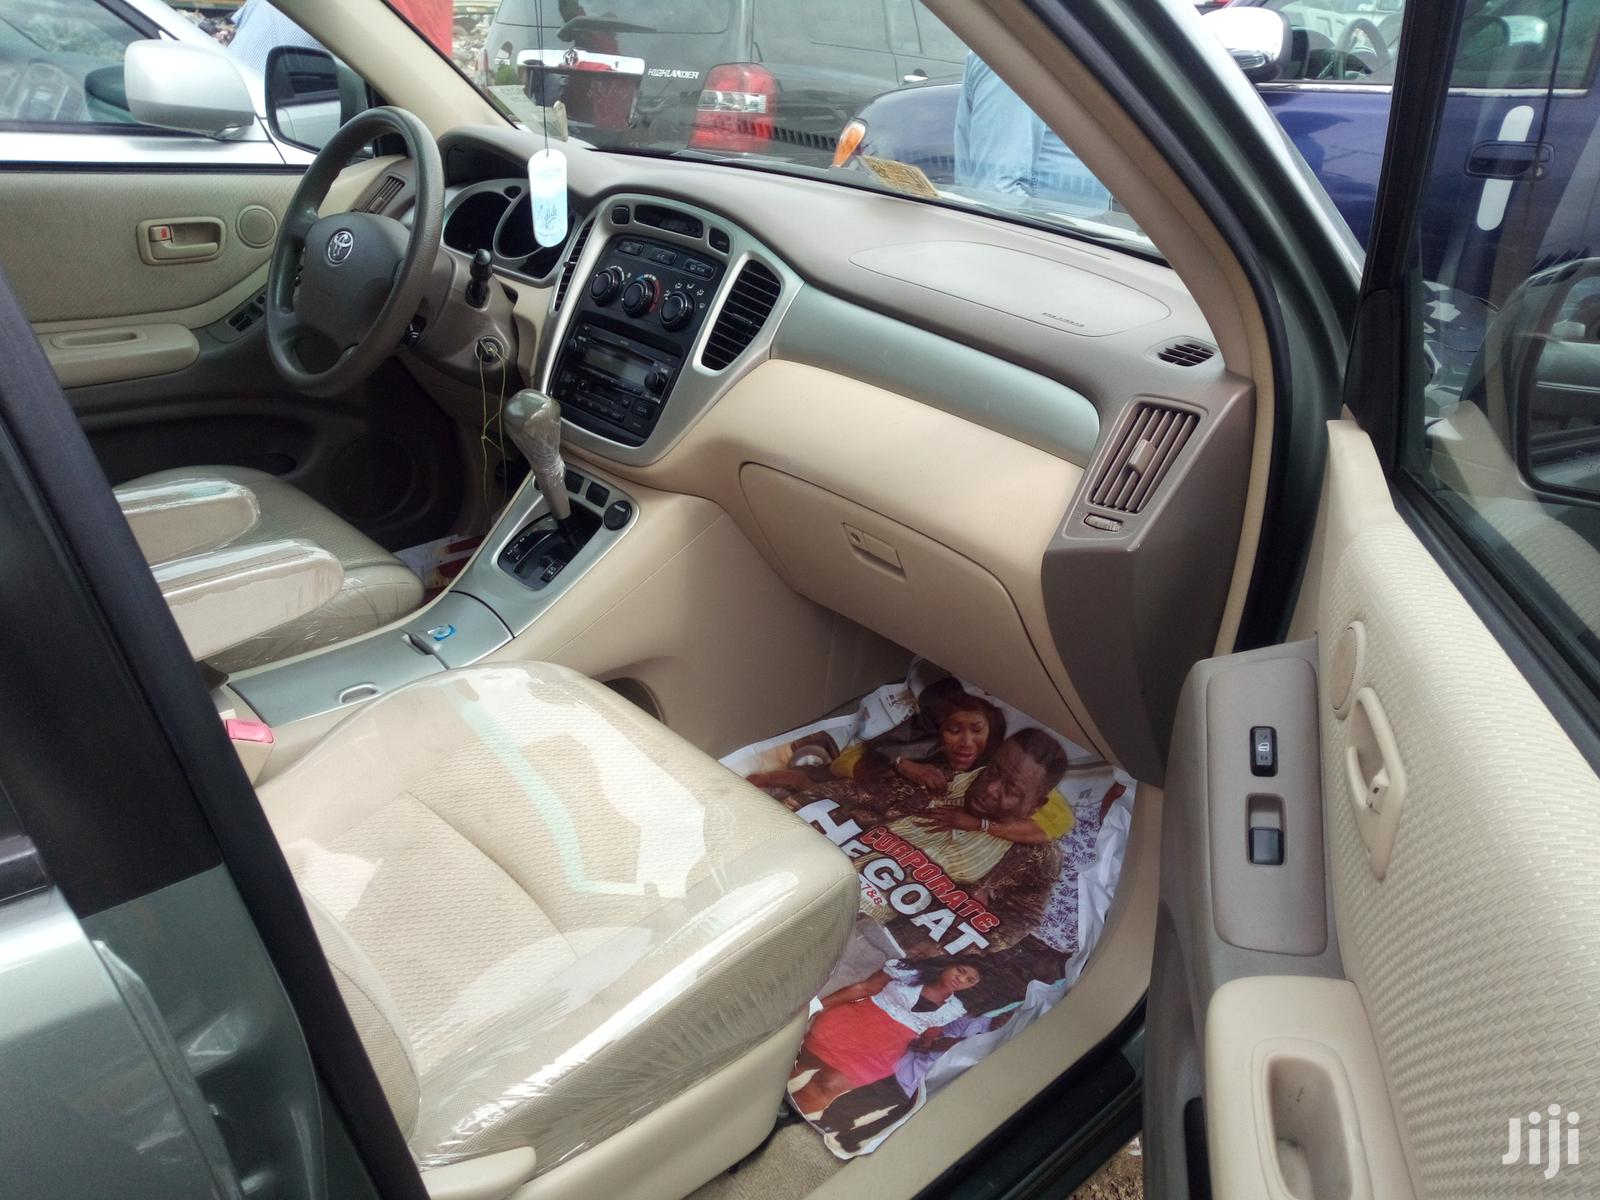 Toyota Highlander 2005 Limited V6 Green | Cars for sale in Apapa, Lagos State, Nigeria